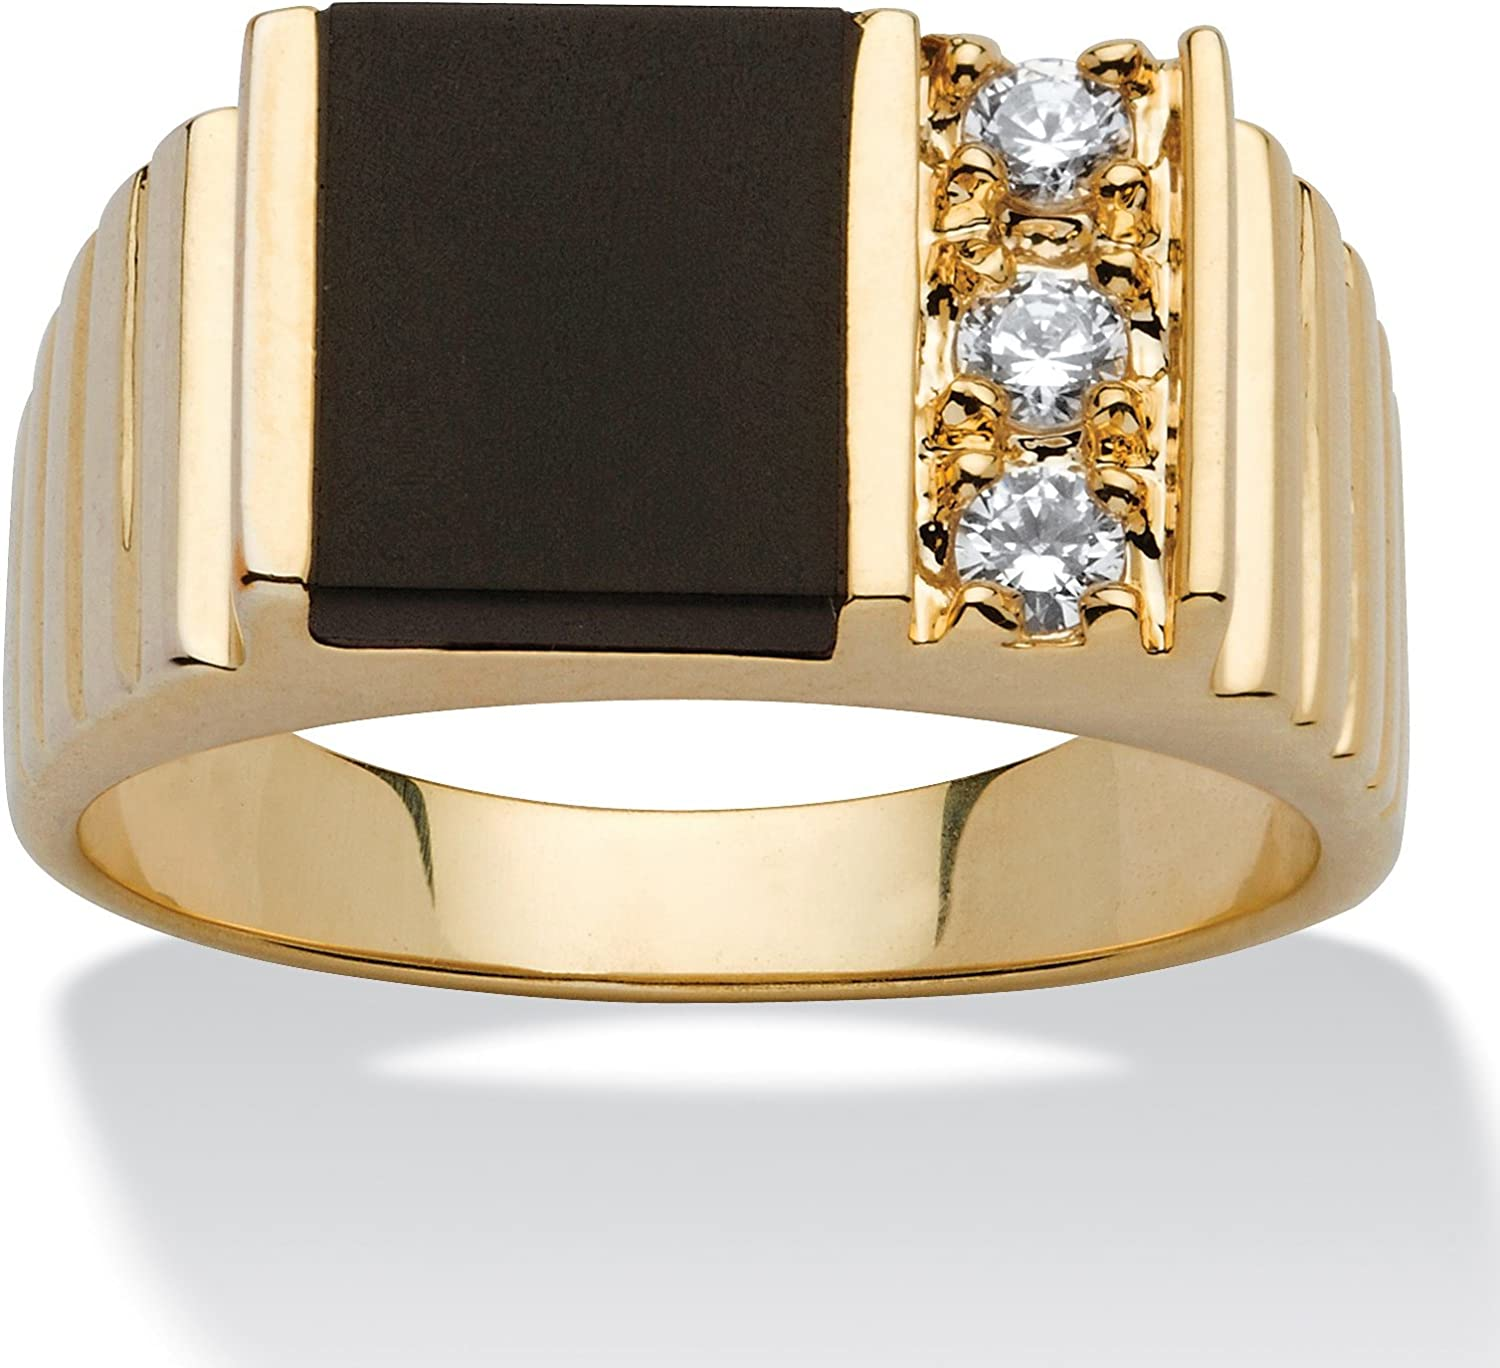 Palm Beach Jewelry Men's 14K Yellow Gold Plated Rectangular Shaped Natural Black Onyx and Round Cubic Zirconia Ring